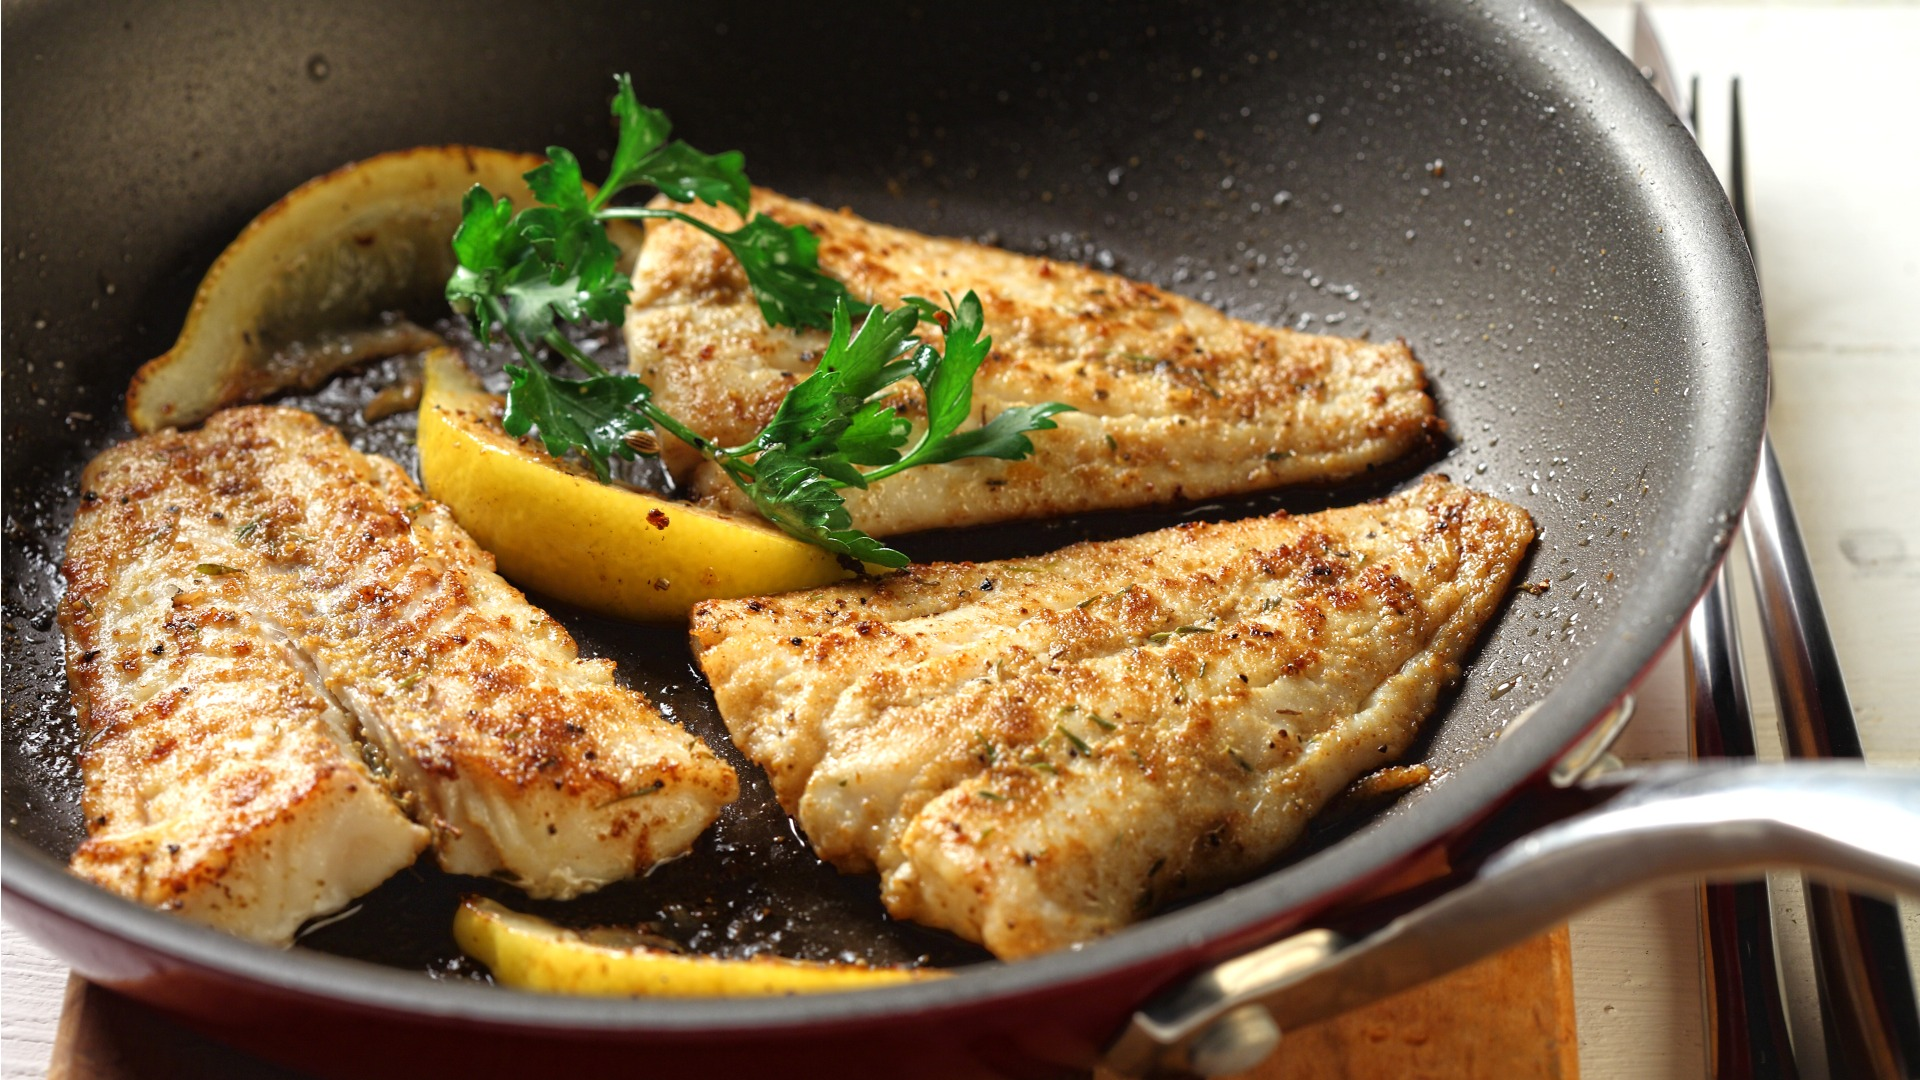 Three pieces of cooked fish in pan with lemon and herbs